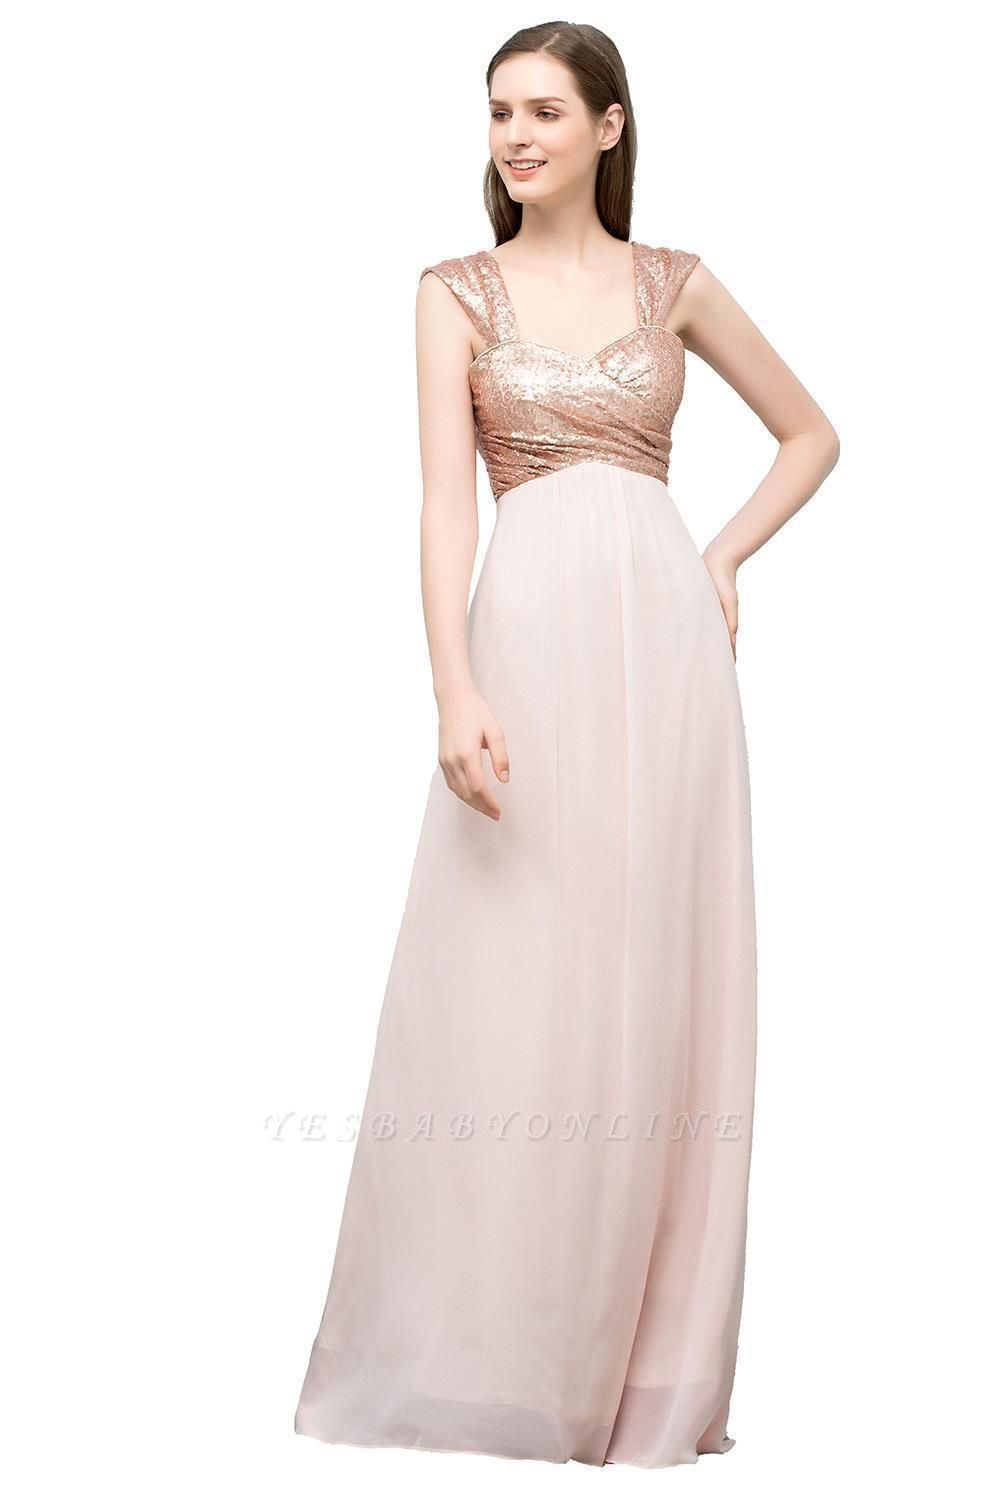 Cheap A-line Sweetheart Off-shoulder Spaghetti Long Sequins Chiffon Prom Dress in Stock